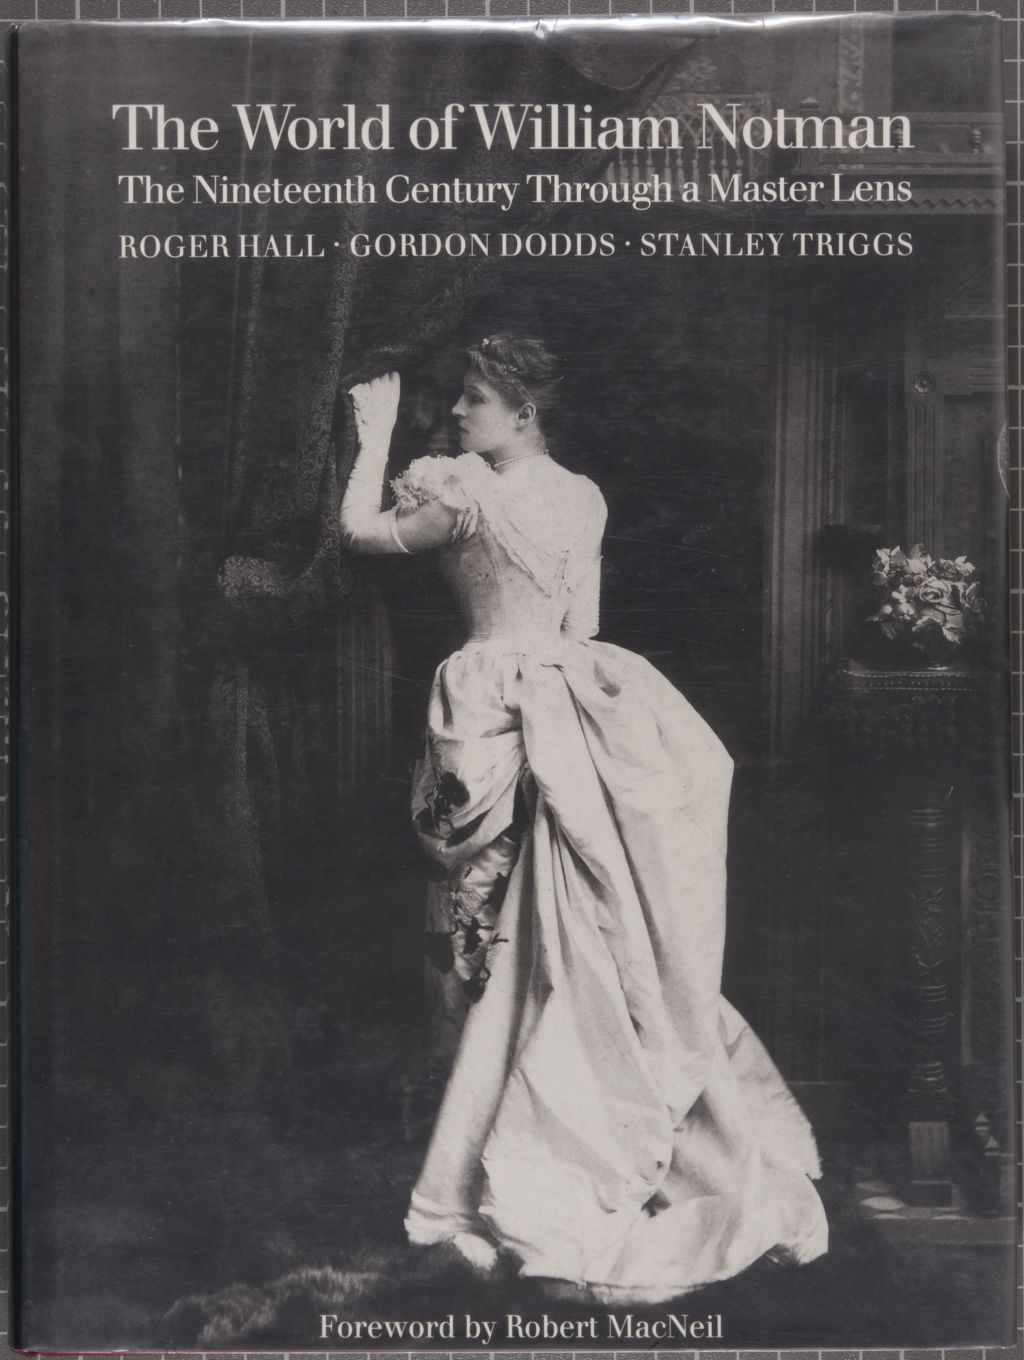 The world of William Notman : the nineteenth century through a master lens.